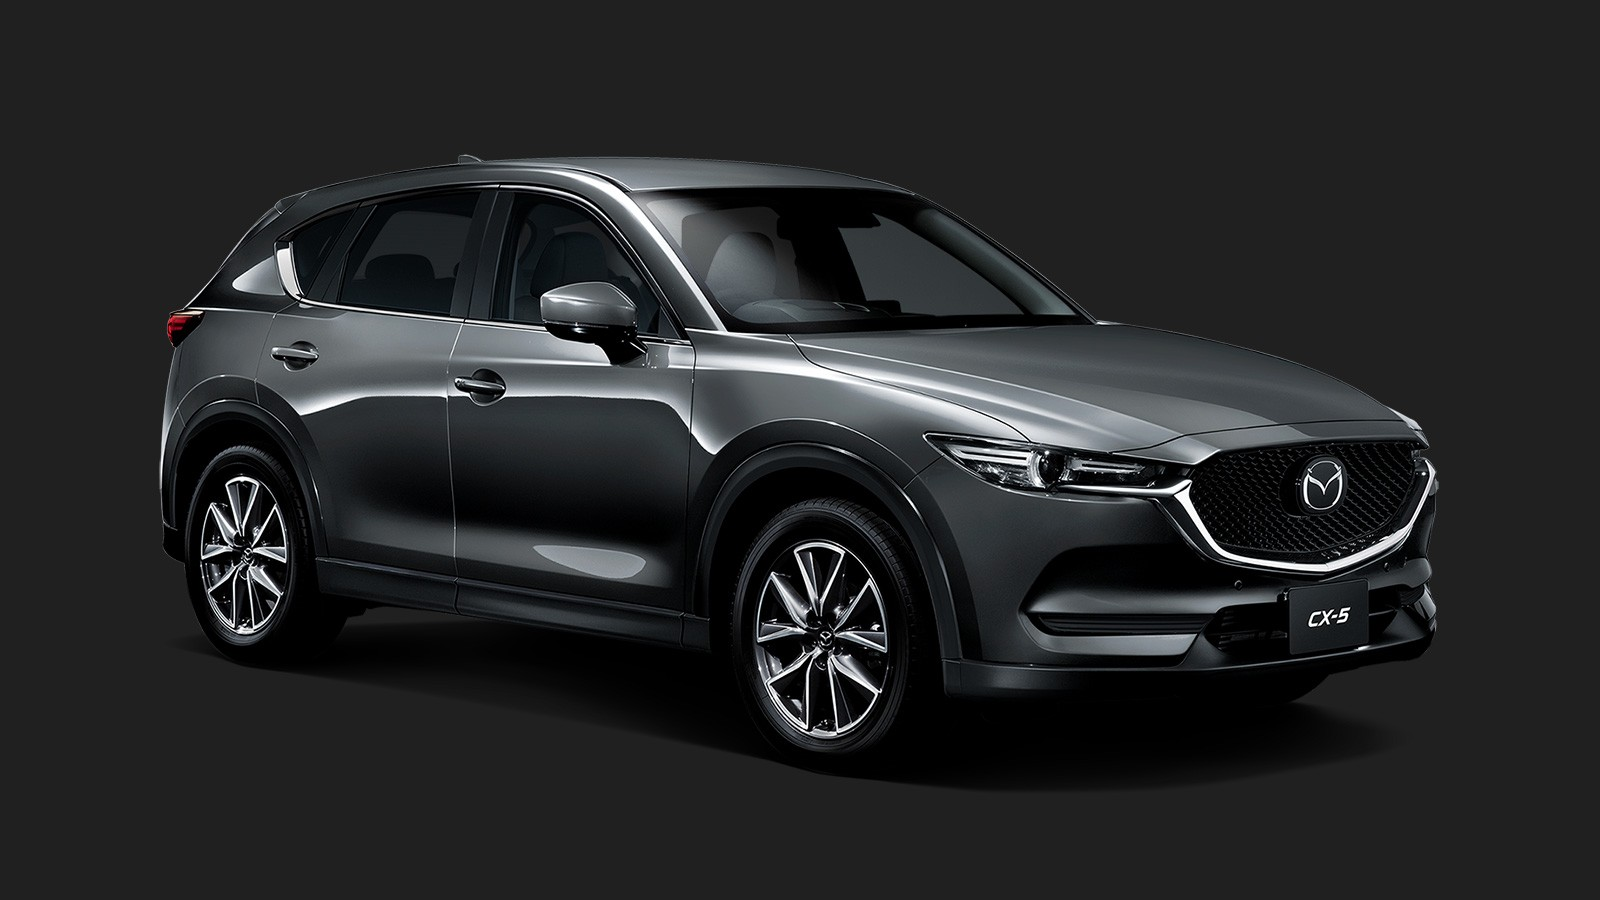 2017 Mazda Cx 5 Specifications And Prices Revealed For Japan Autoevolution